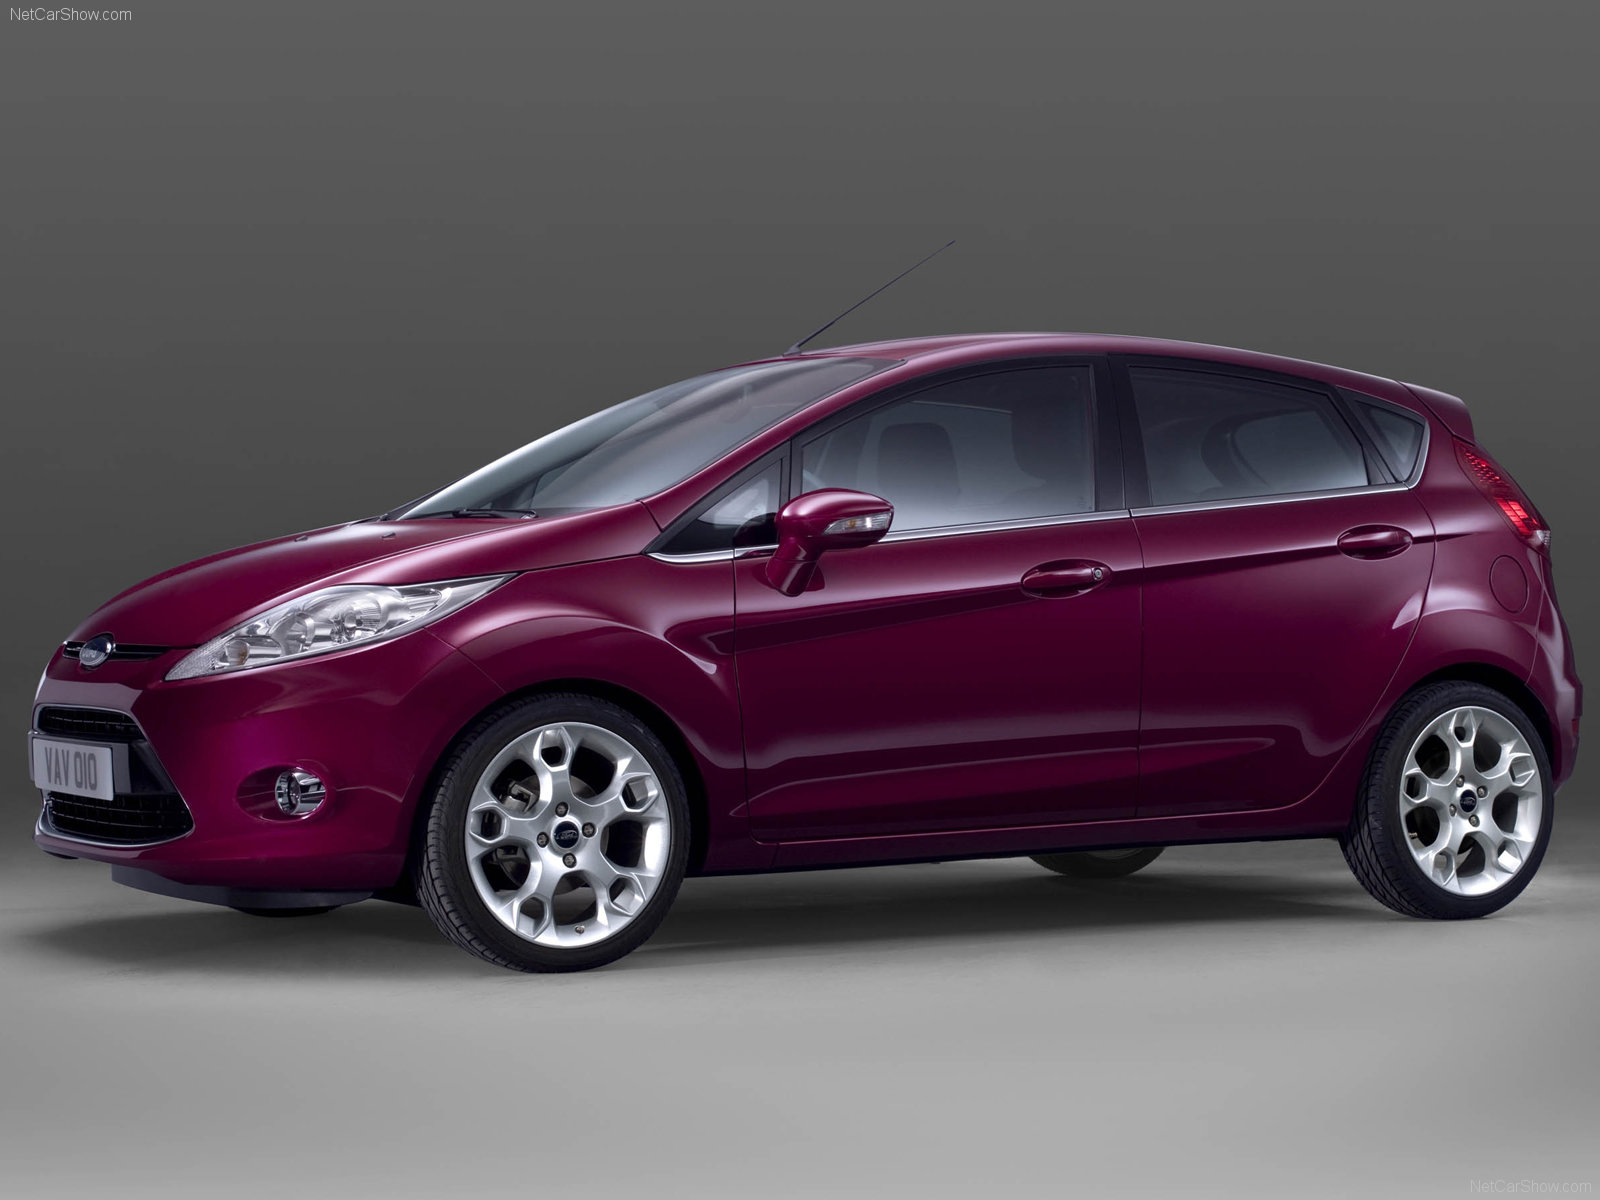 New Ford Fiesta 5-door pictures & Ford Fiesta 5-door photos - PhotoGallery with 3 pics| CarsBase.com Pezcame.Com